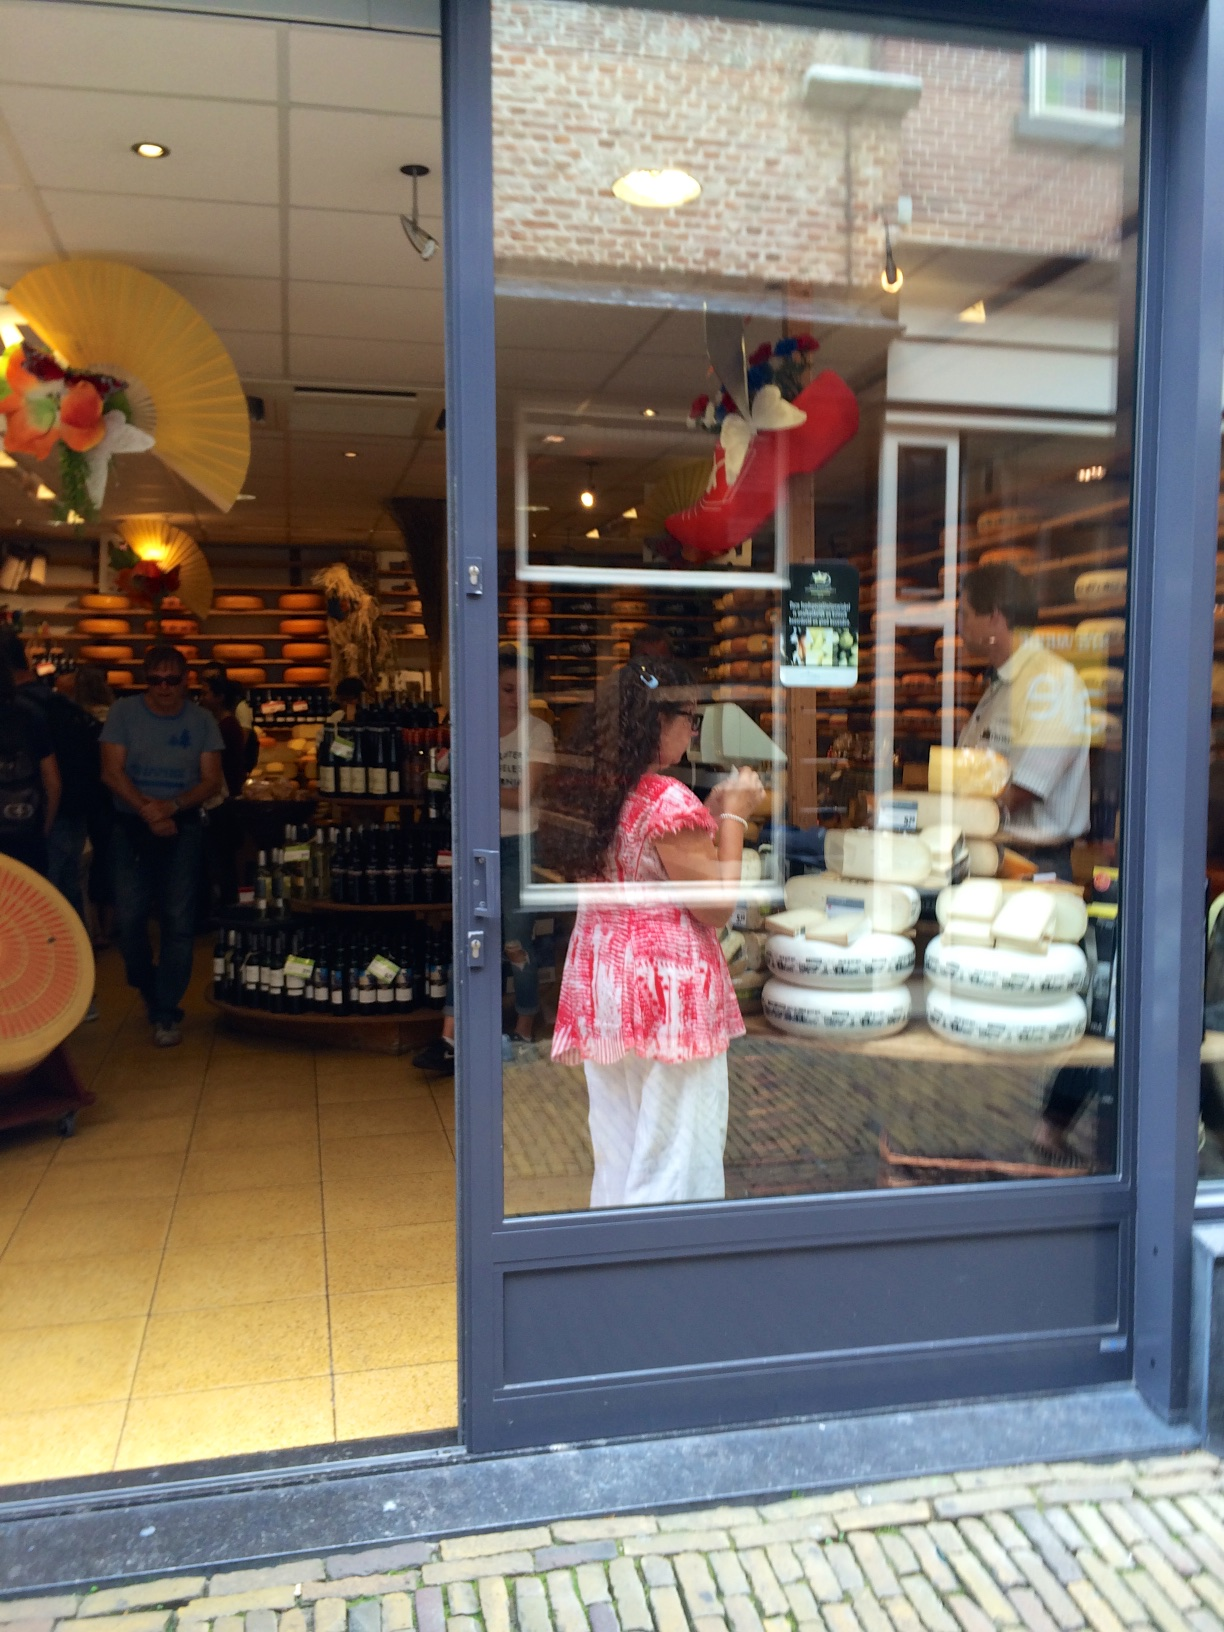 Of course there are well stocked cheese shops in Alkmaar and no bouzoukias playing loudly in the background